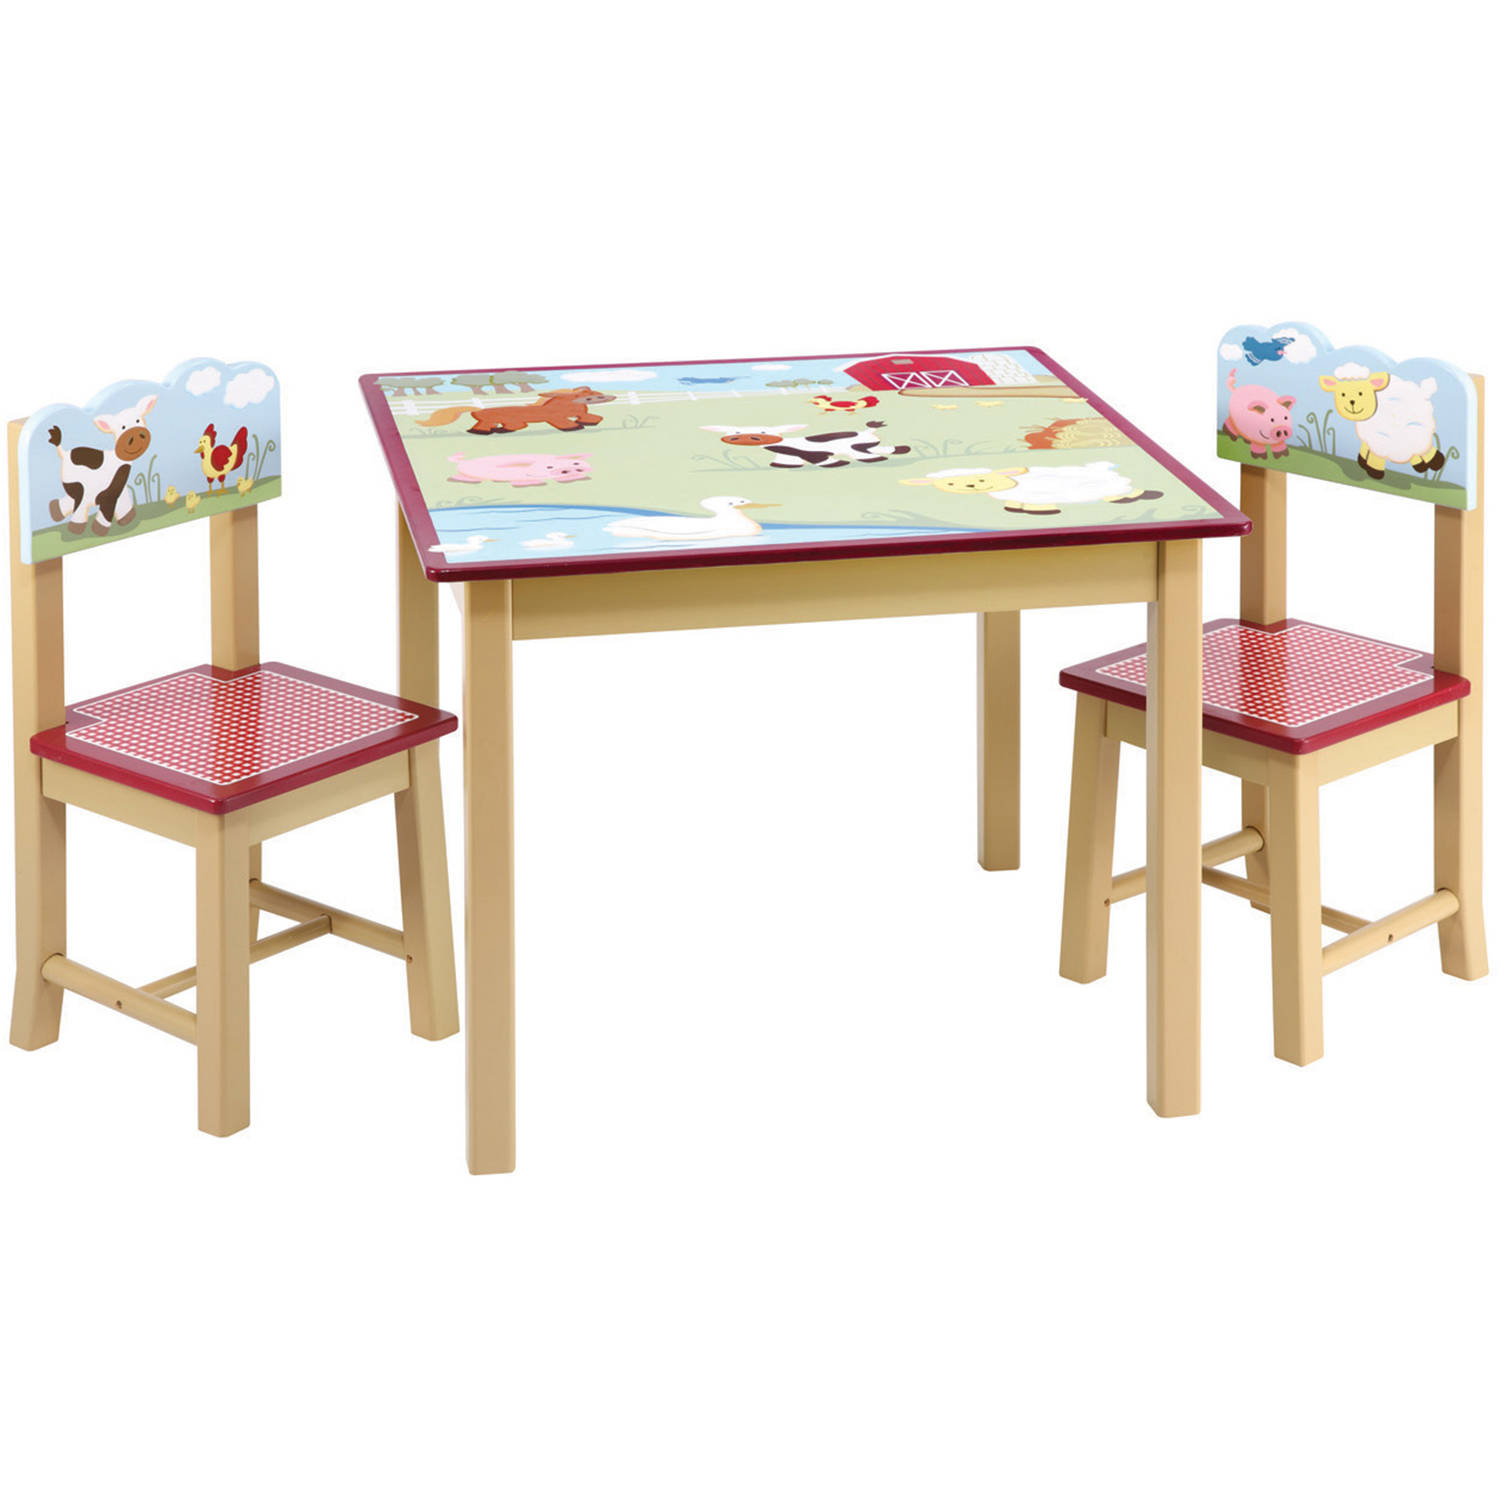 Guidecraft Farm Friends Table and Chairs Set Green Walmart